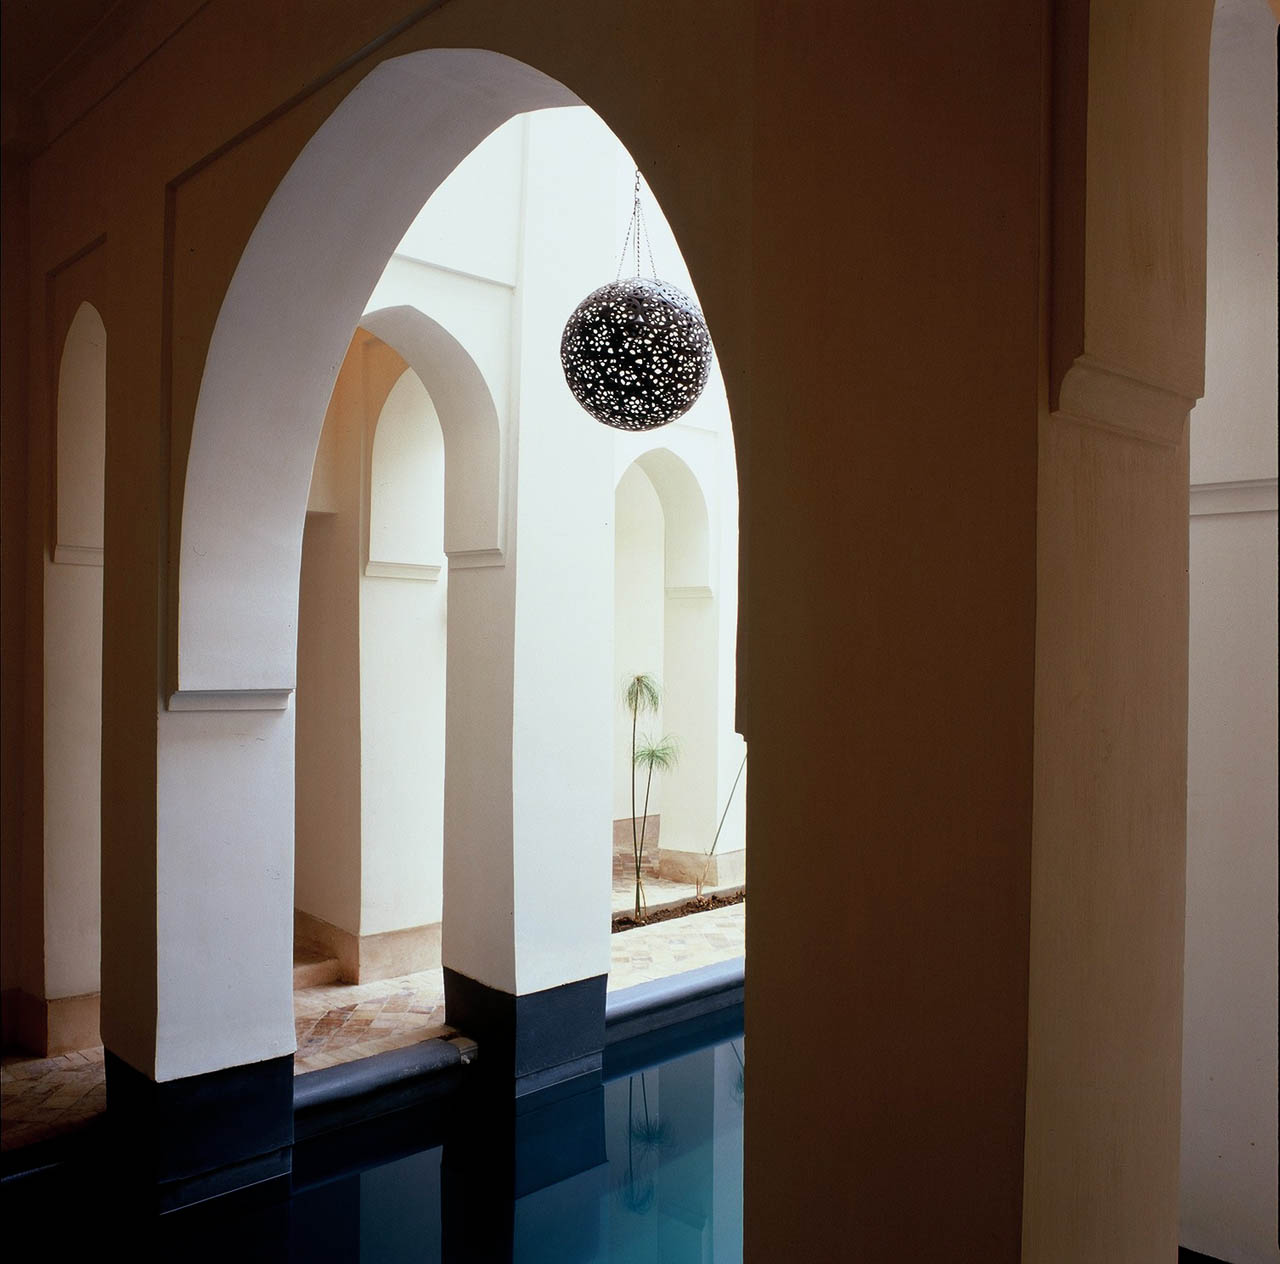 The pool courtyard that can be seen from the room